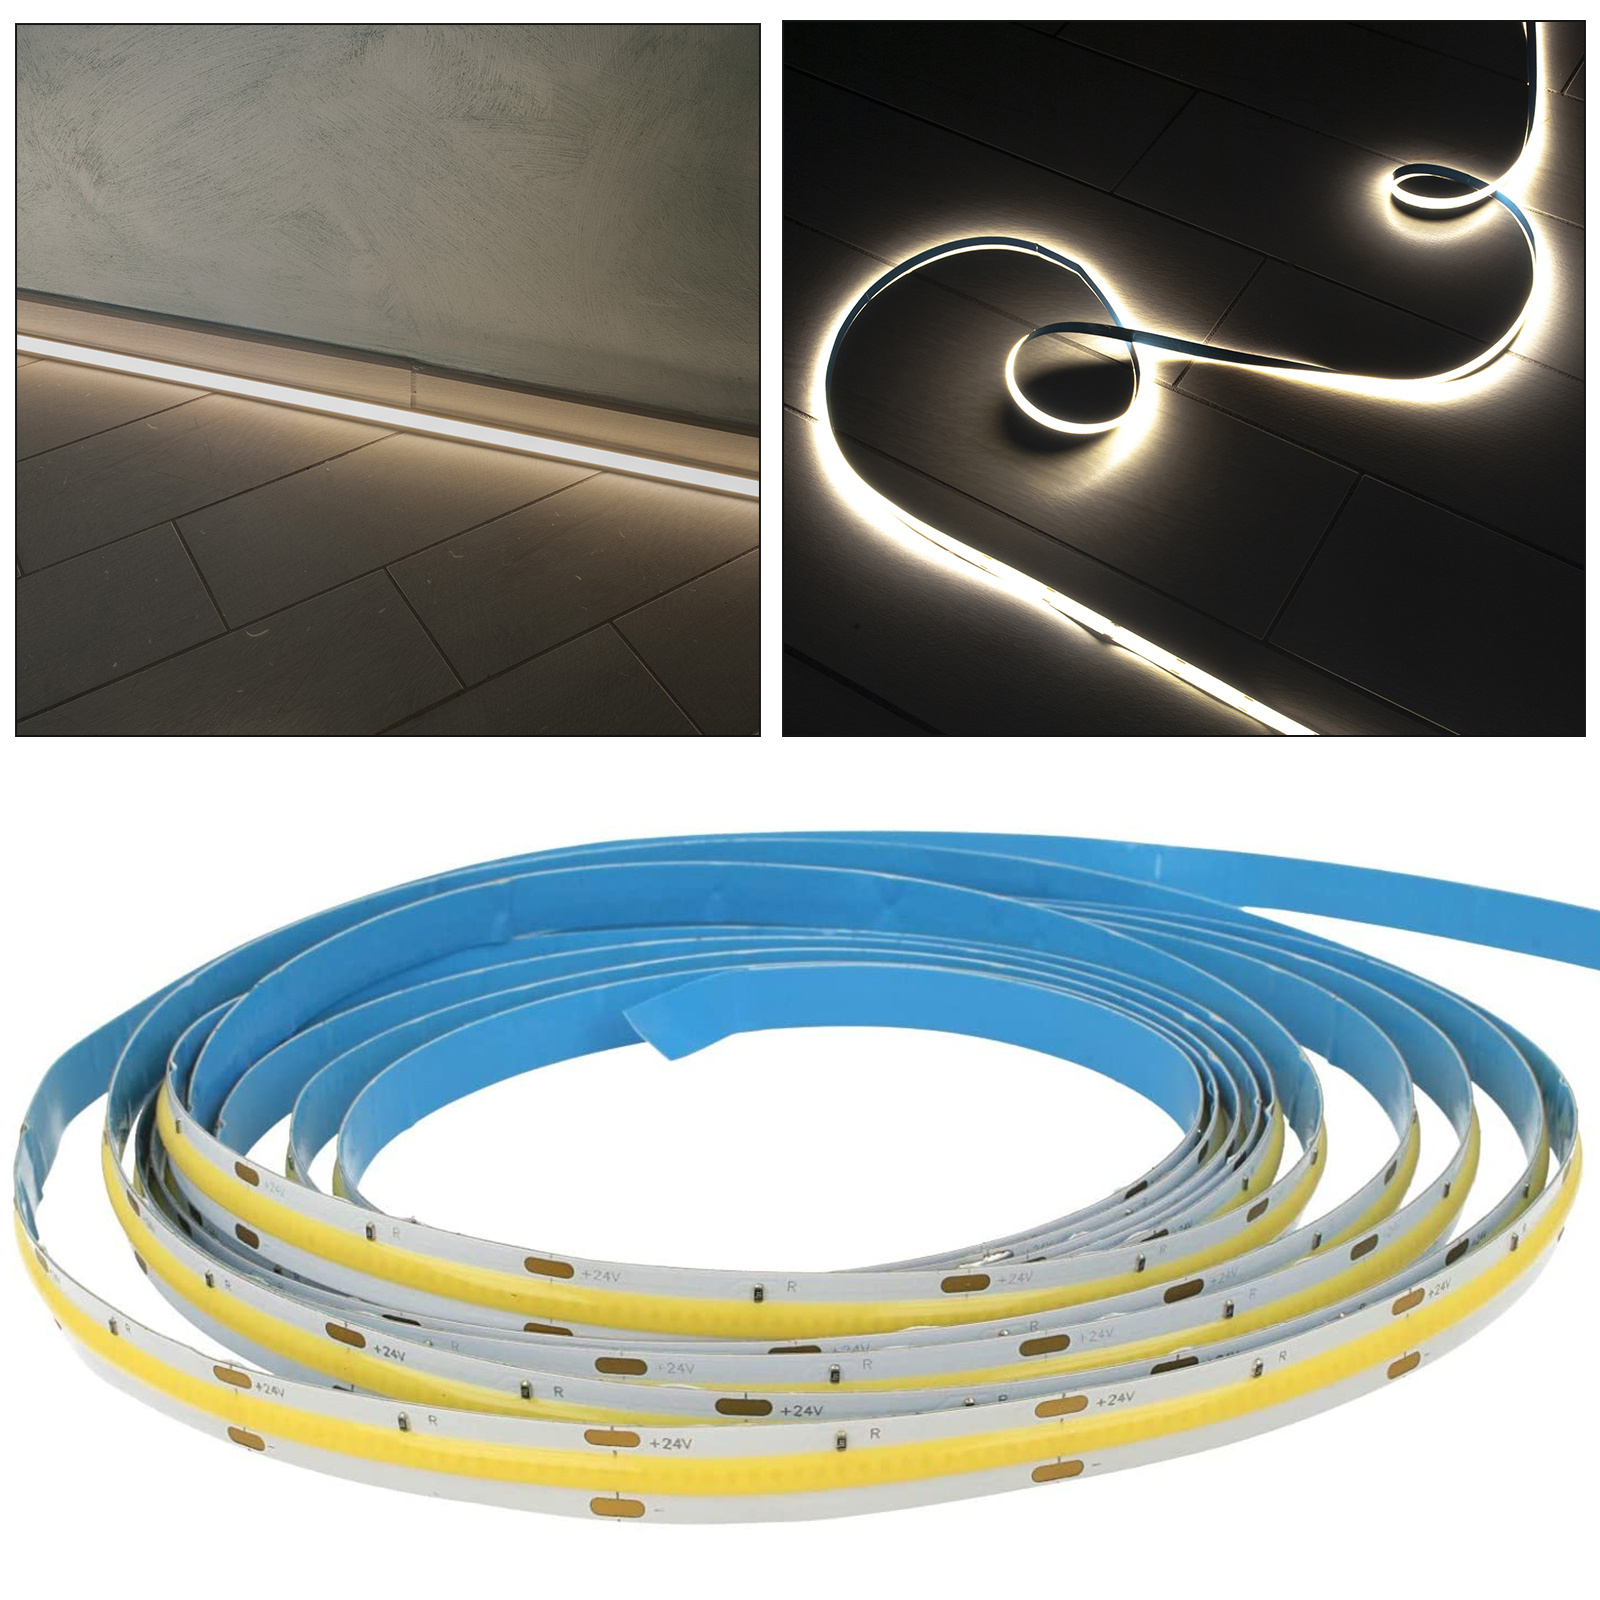 Flexible LED strip 24V COB continuous light blade 75W 10M profiles bars 7500lm